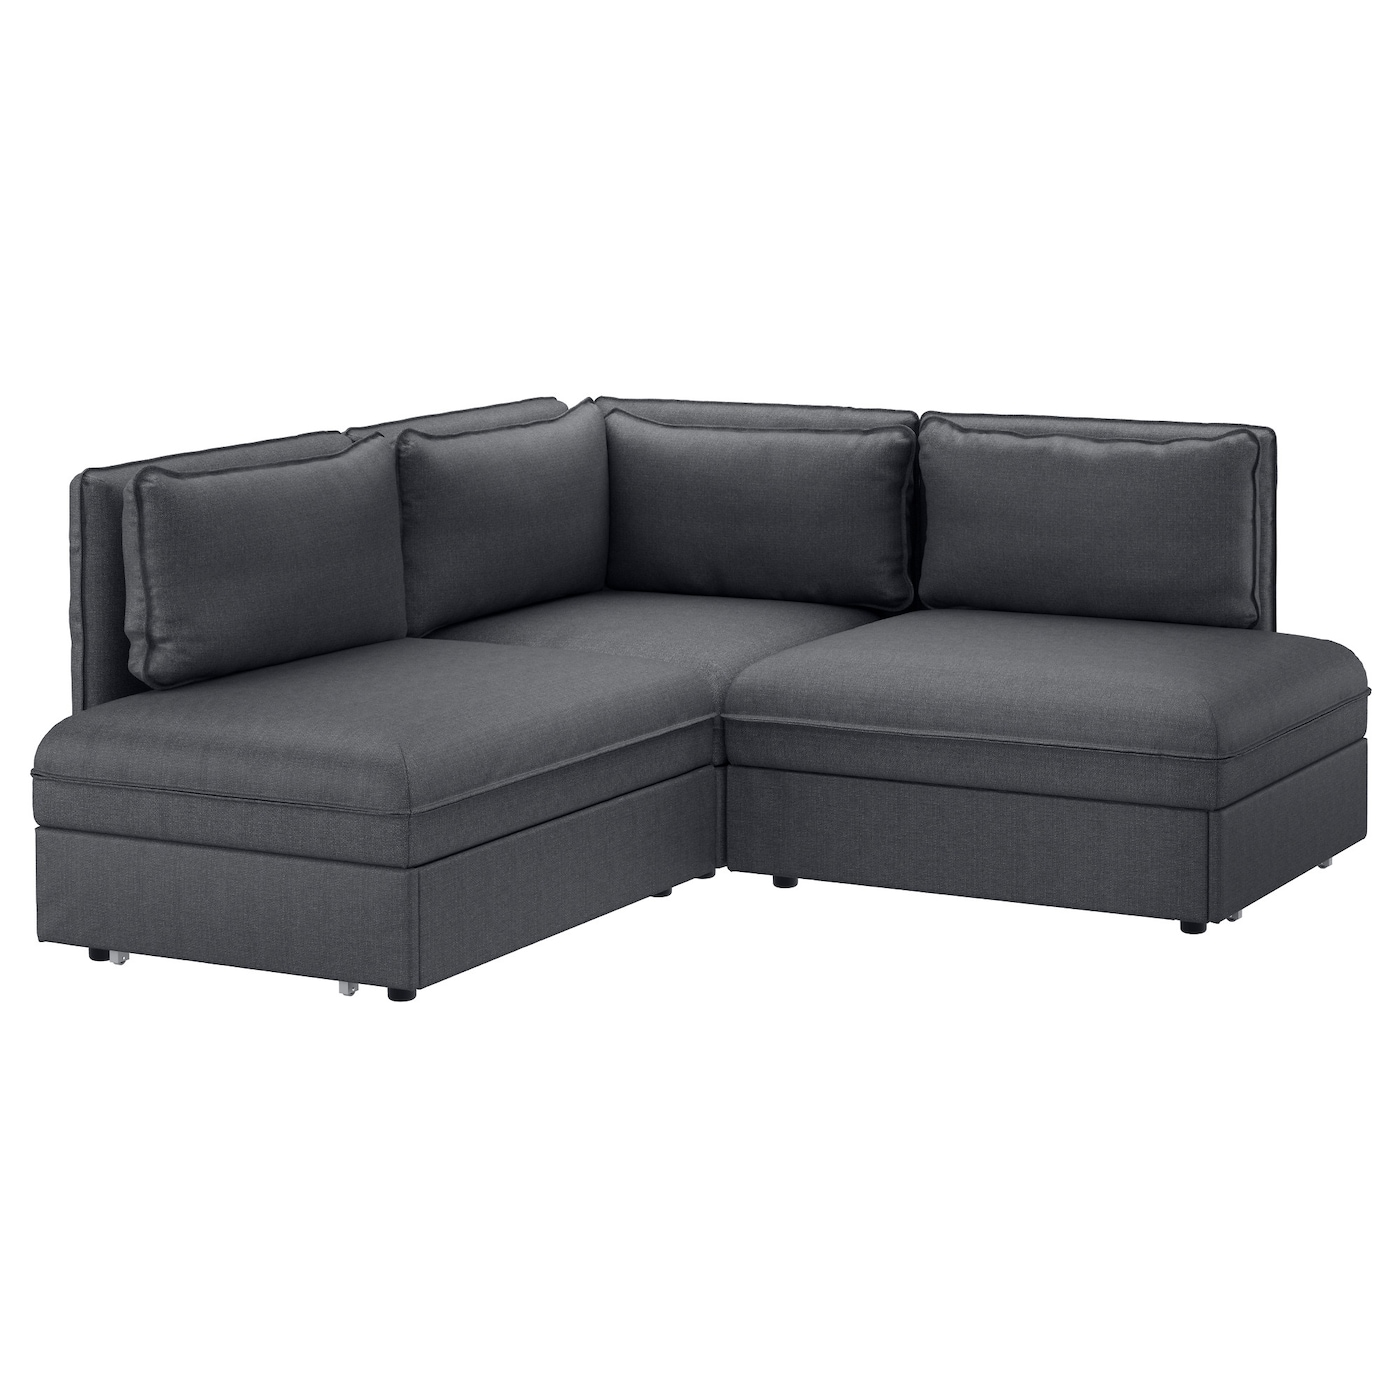 vallentuna 3 seat corner sofa with bed hillared dark grey. Black Bedroom Furniture Sets. Home Design Ideas